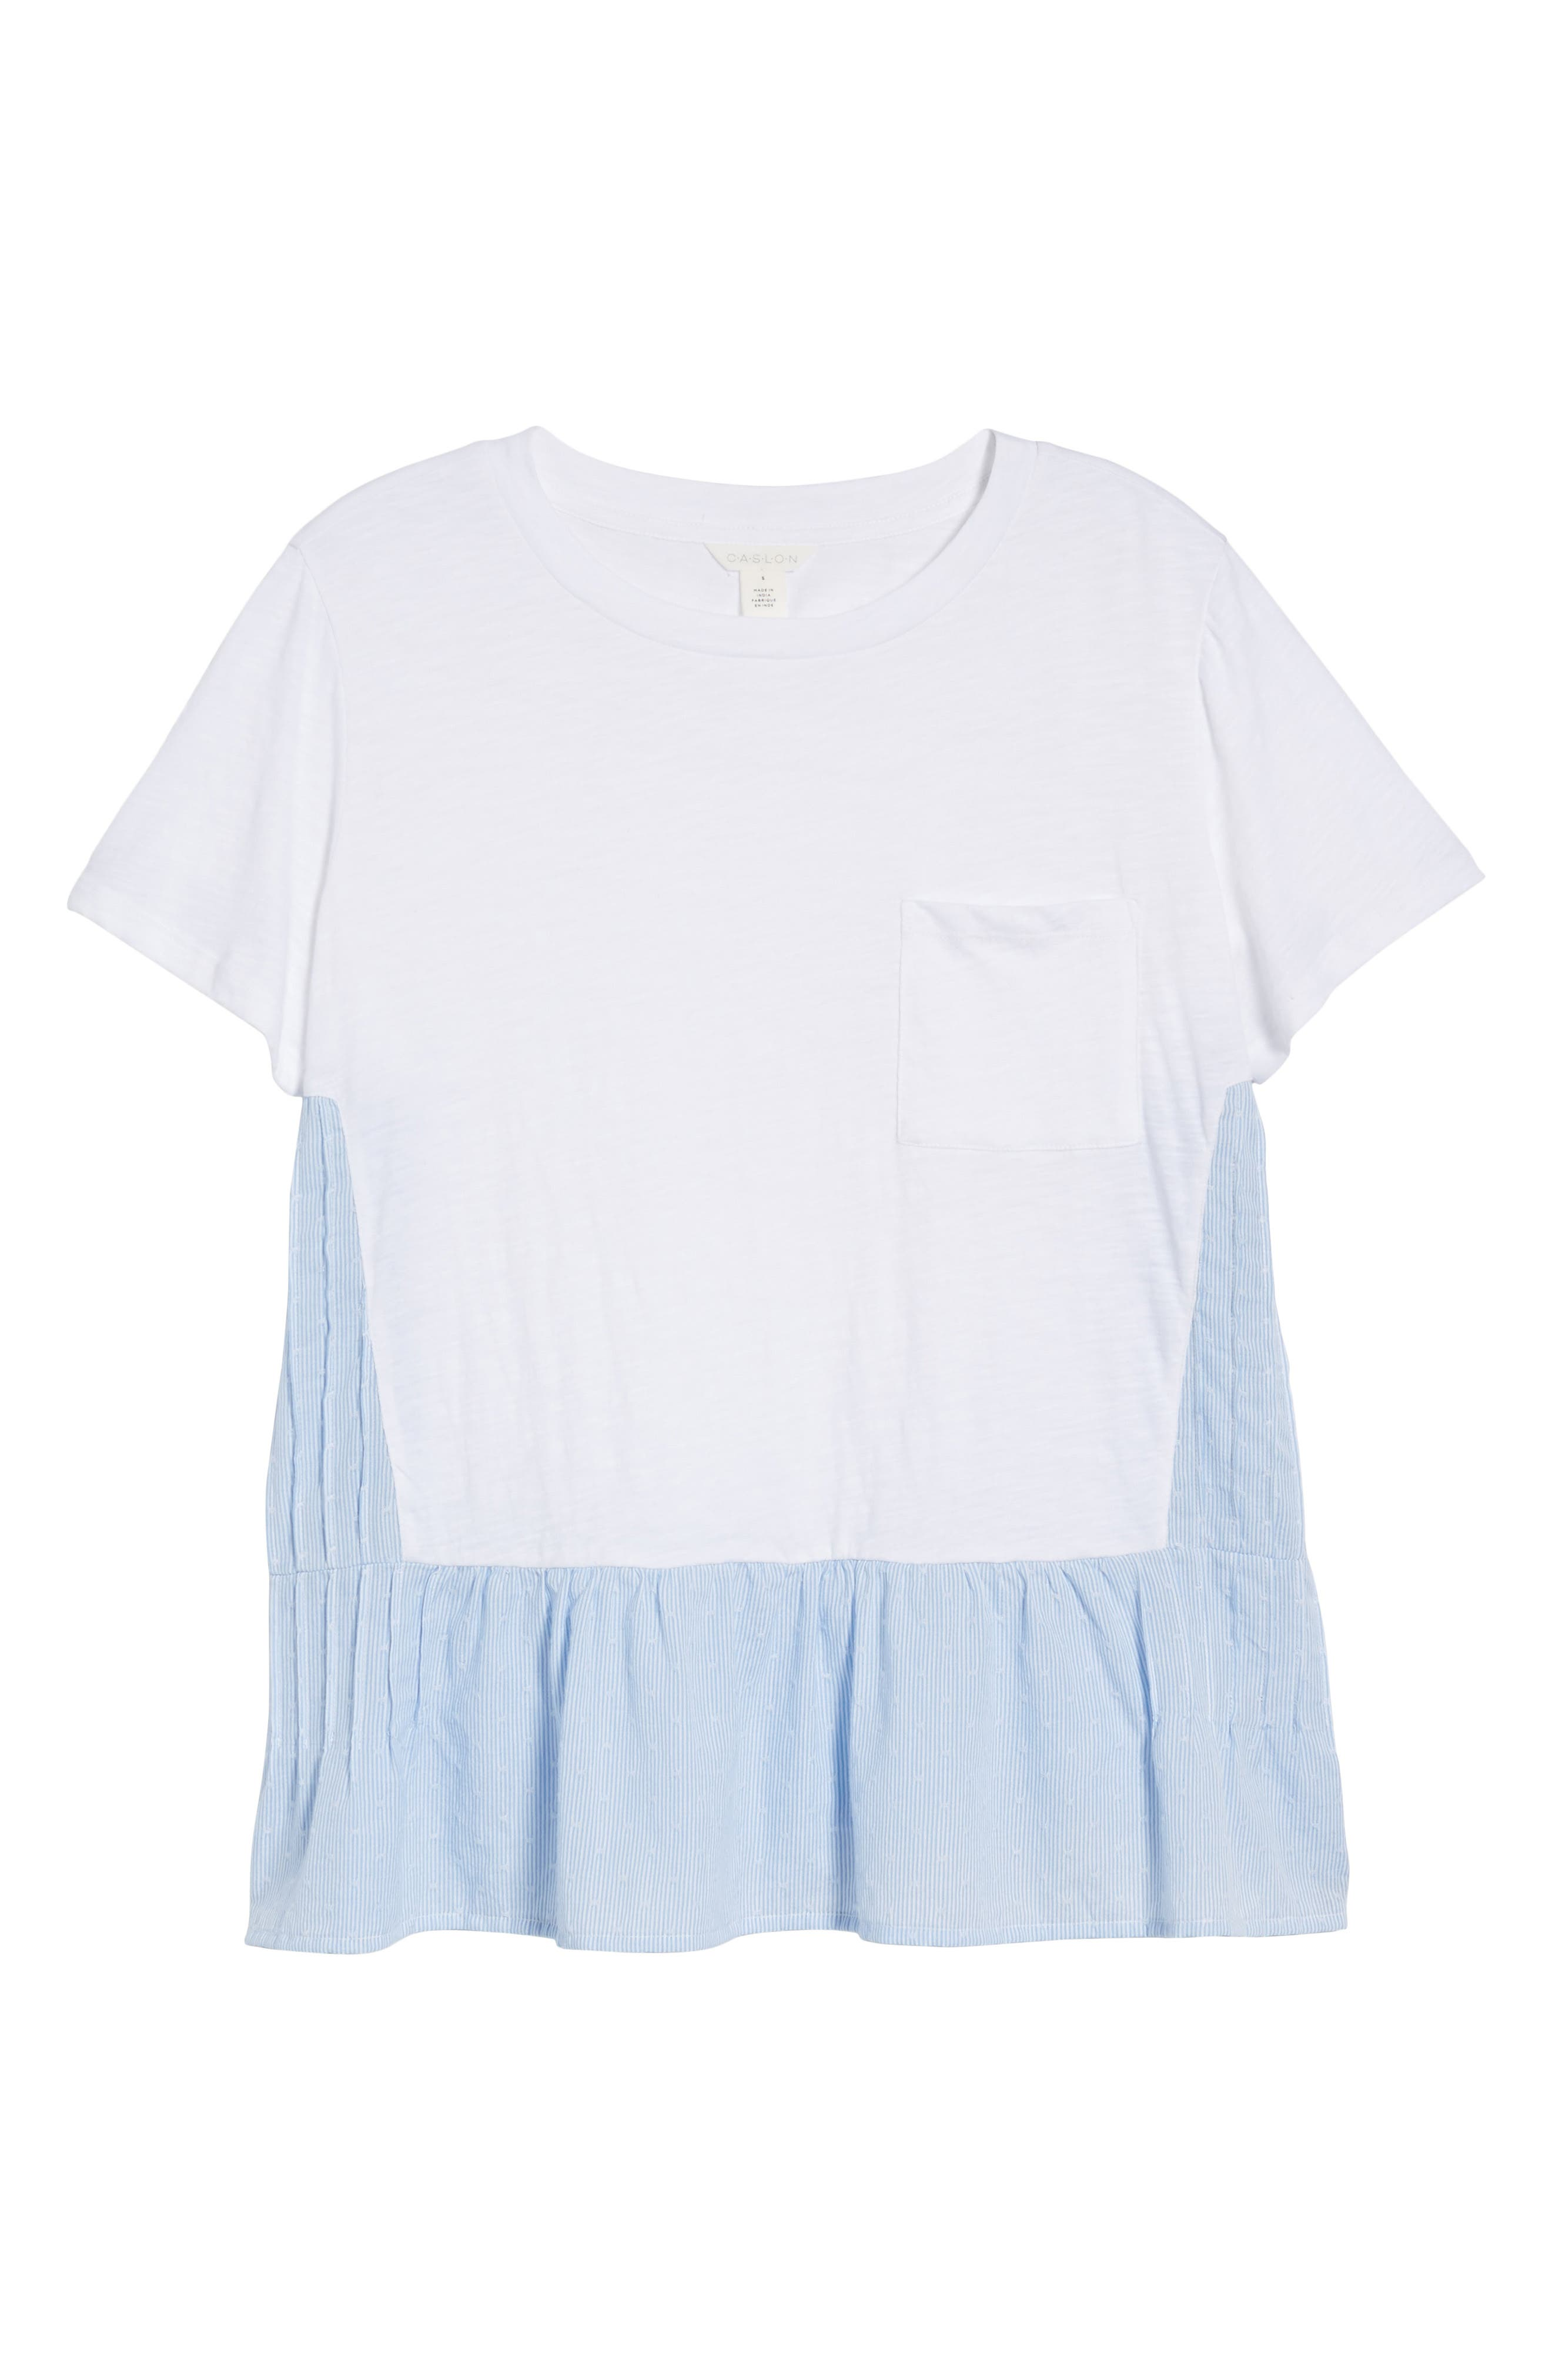 Layered Look Tee,                             Alternate thumbnail 12, color,